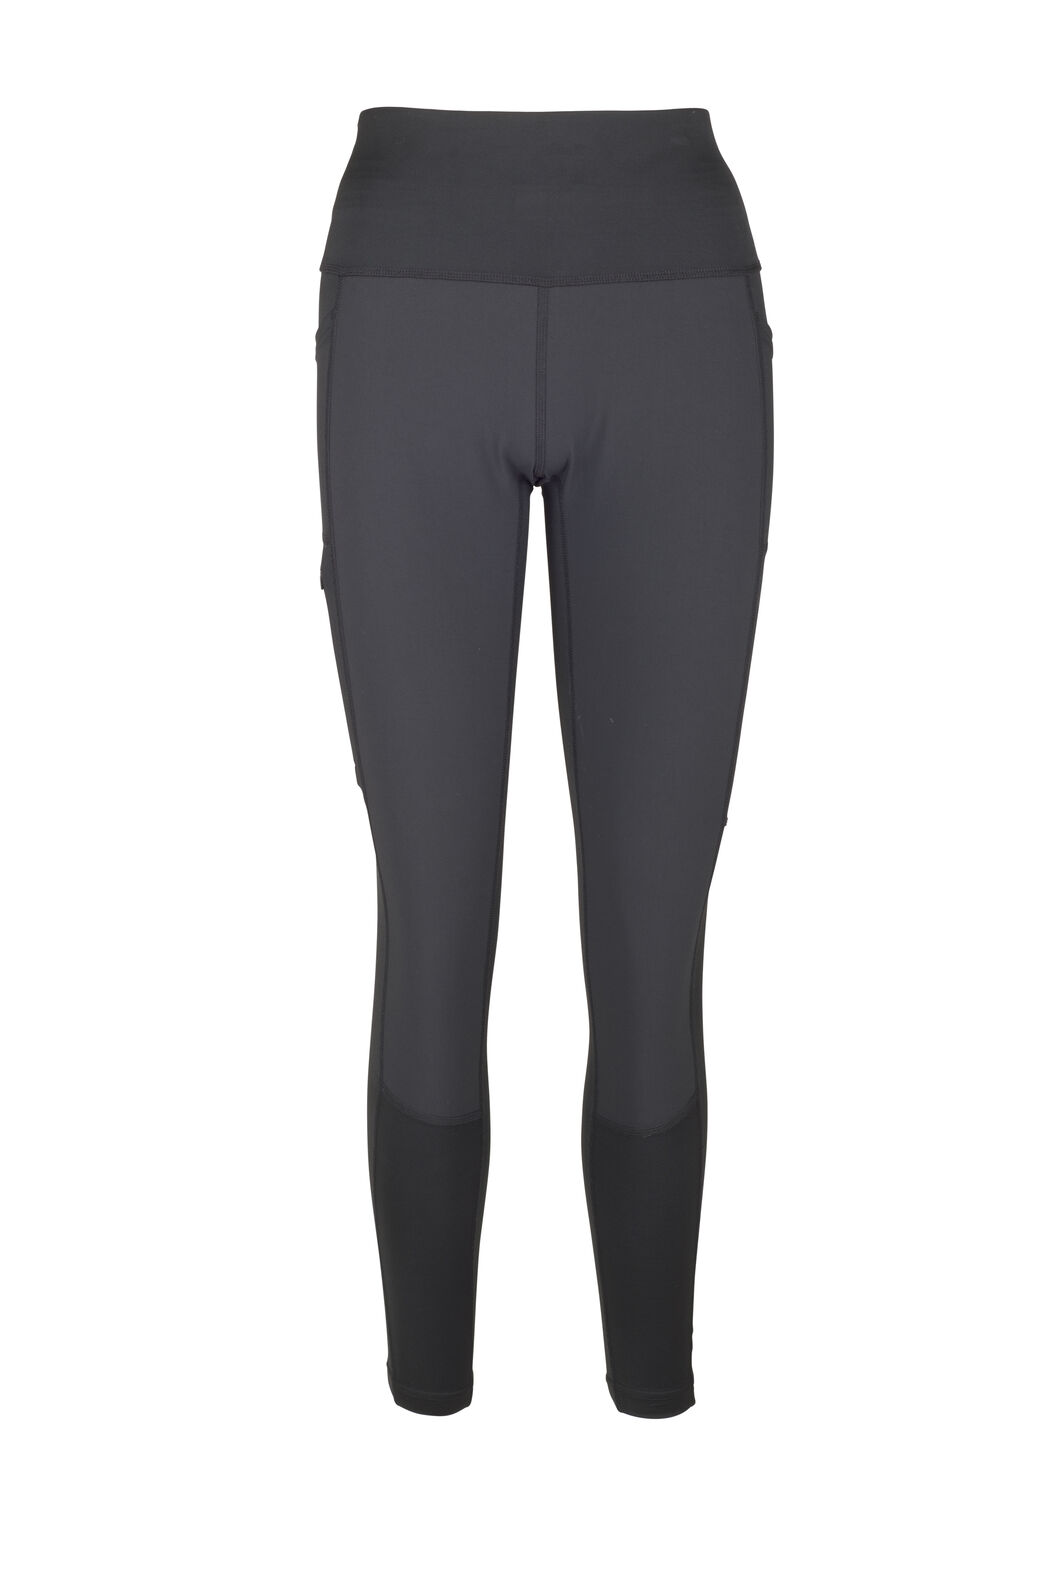 Macpac There and Back Tights — Women's, Black, hi-res